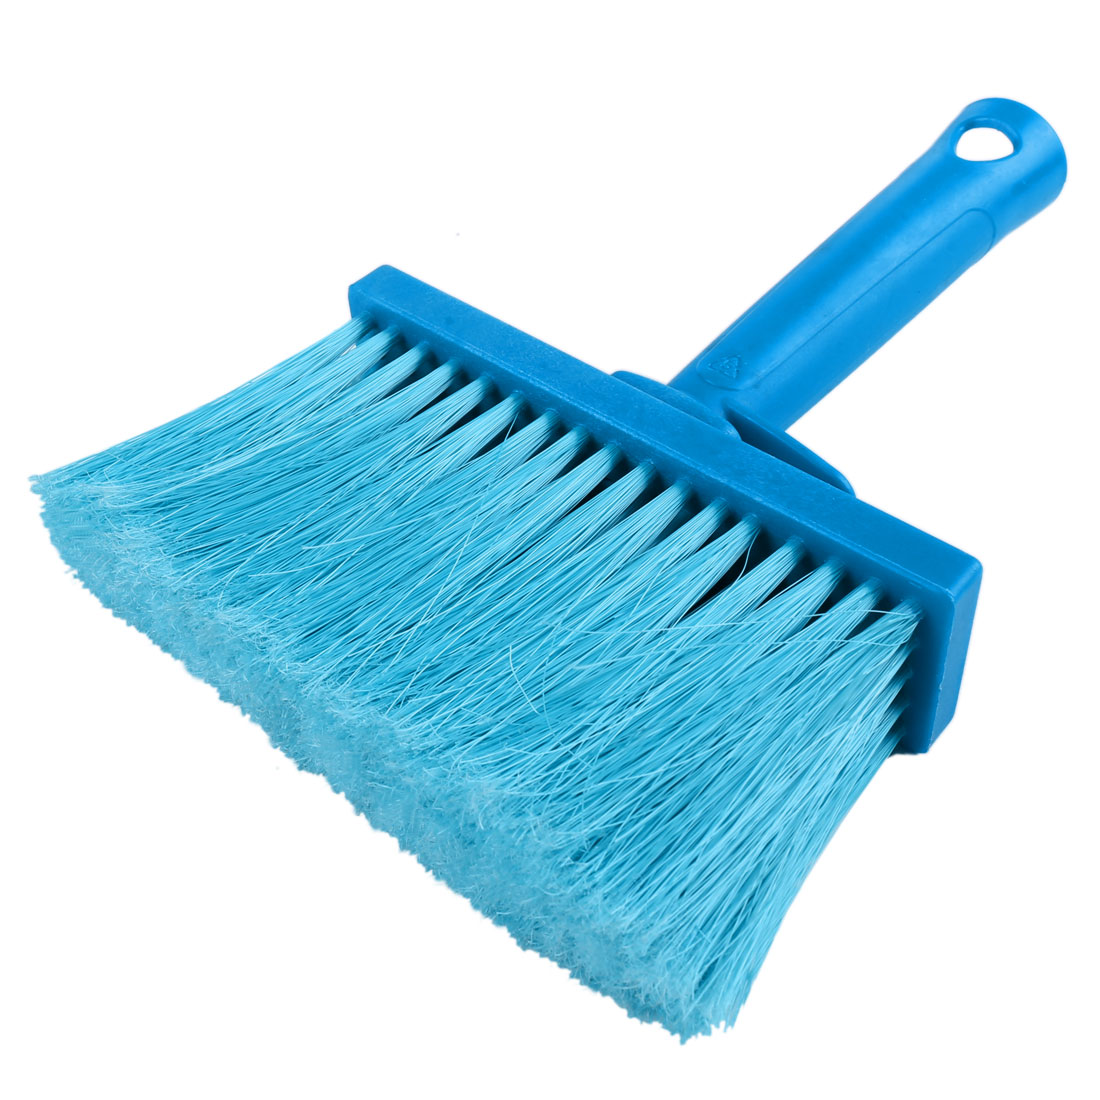 Blue Plastic Handle Soft Bristle Carpet Glass Clothing Cleaning White Wall Scrub Brush